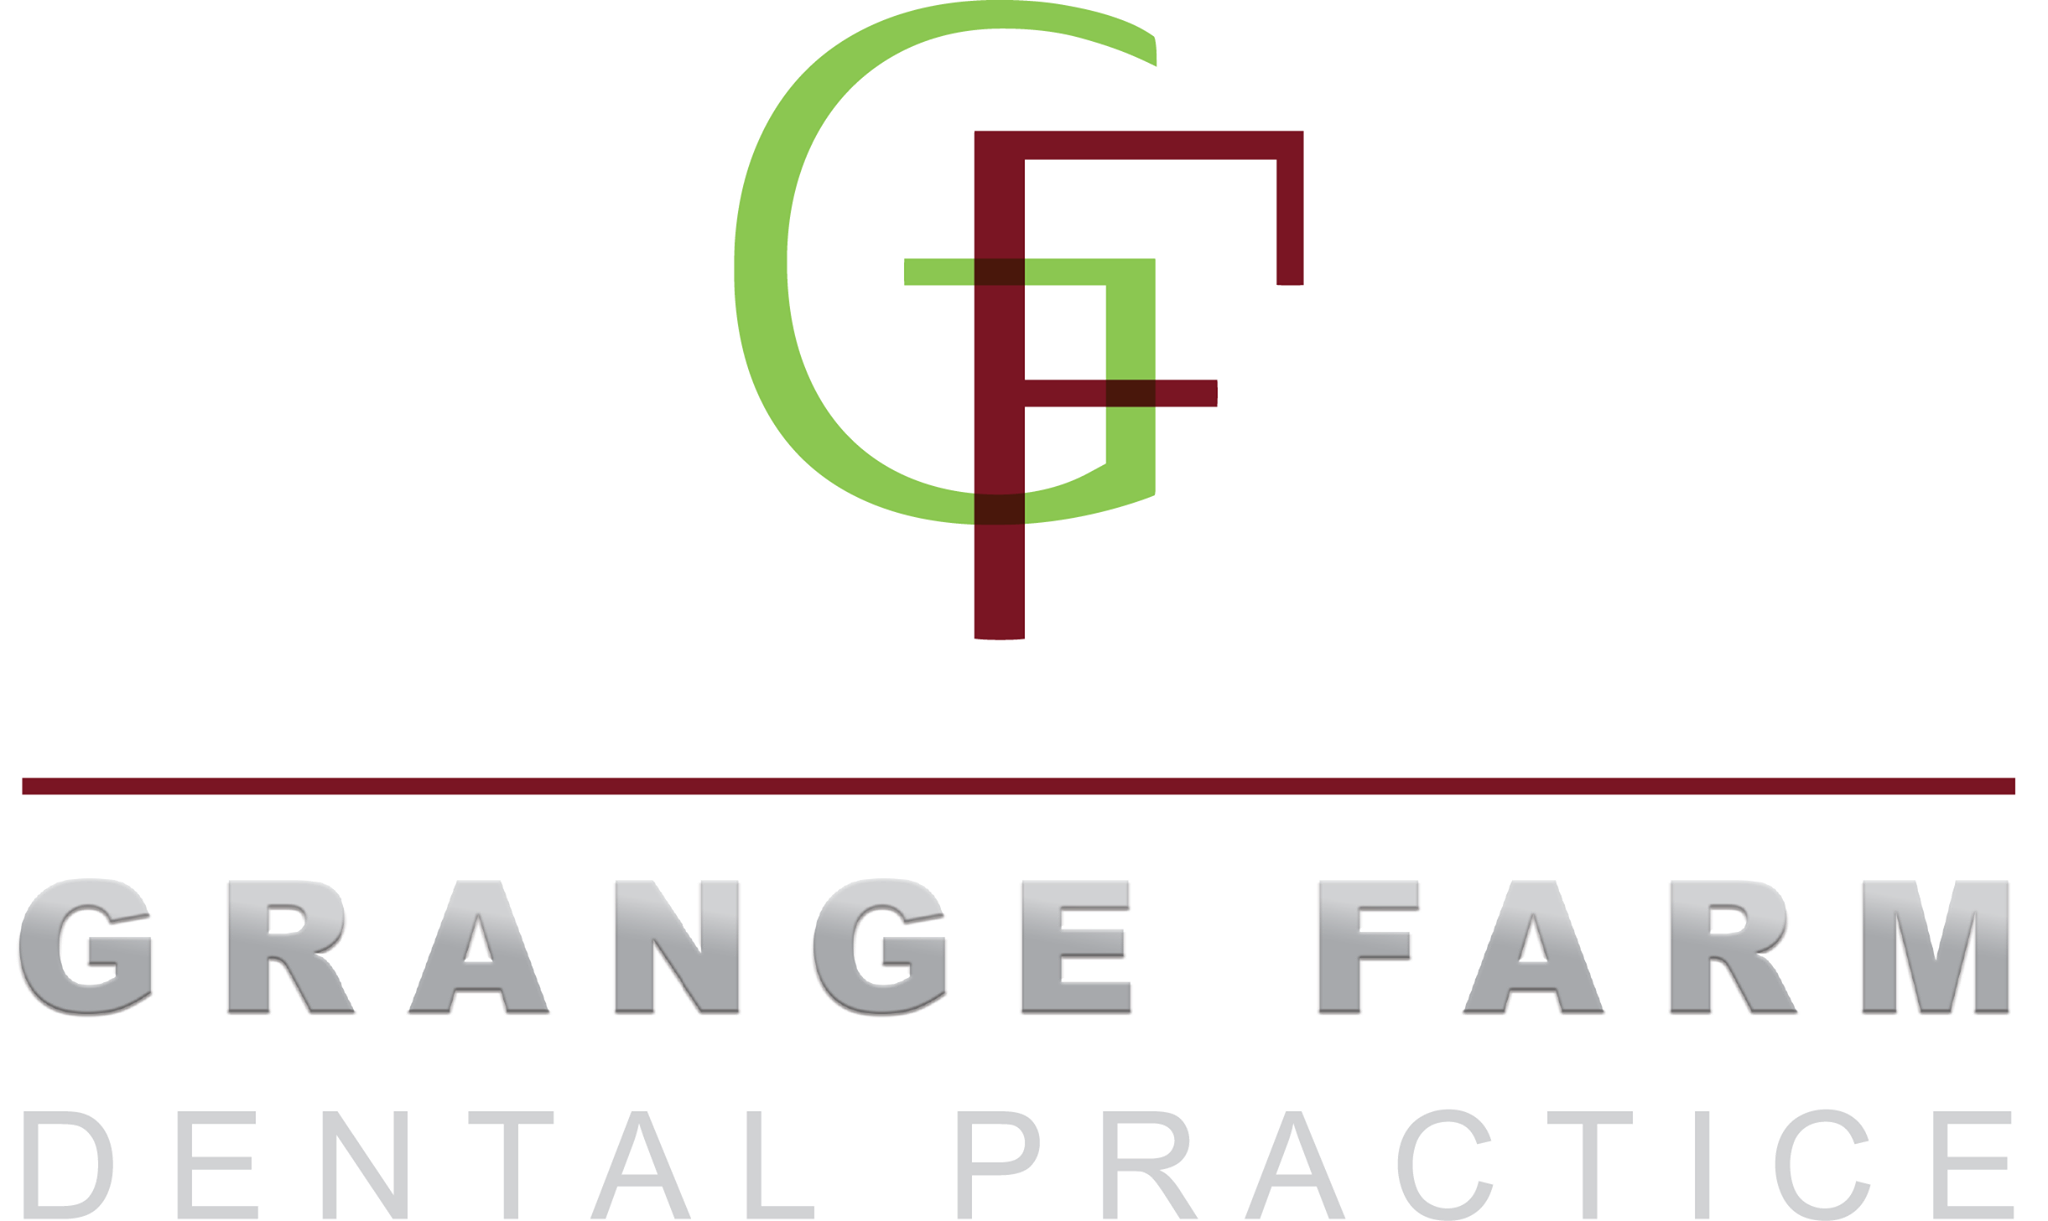 Grange Farm Dental Practice